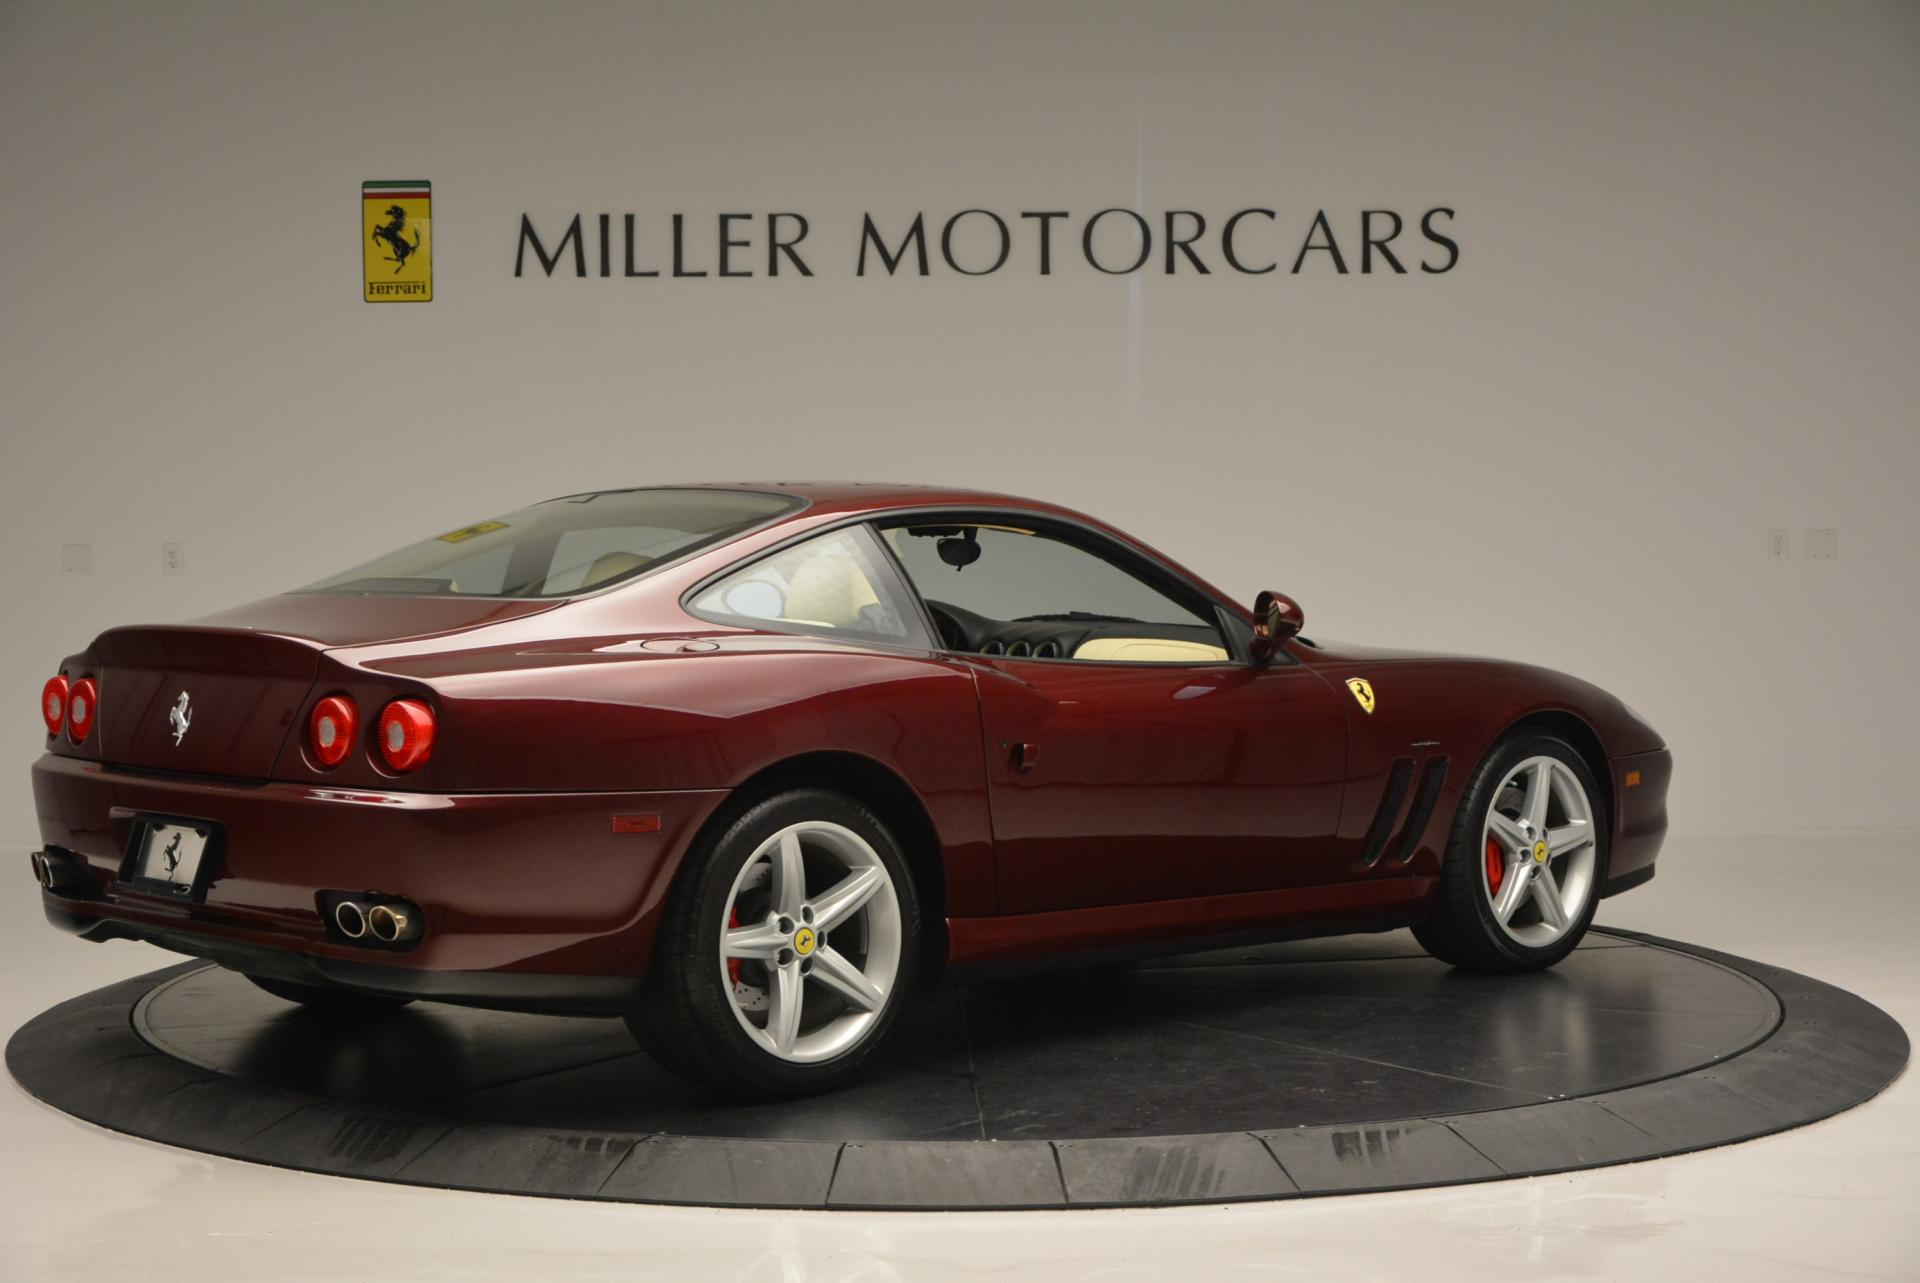 Used 2003 Ferrari 575M Maranello 6-Speed Manual For Sale In Westport, CT 143_p8